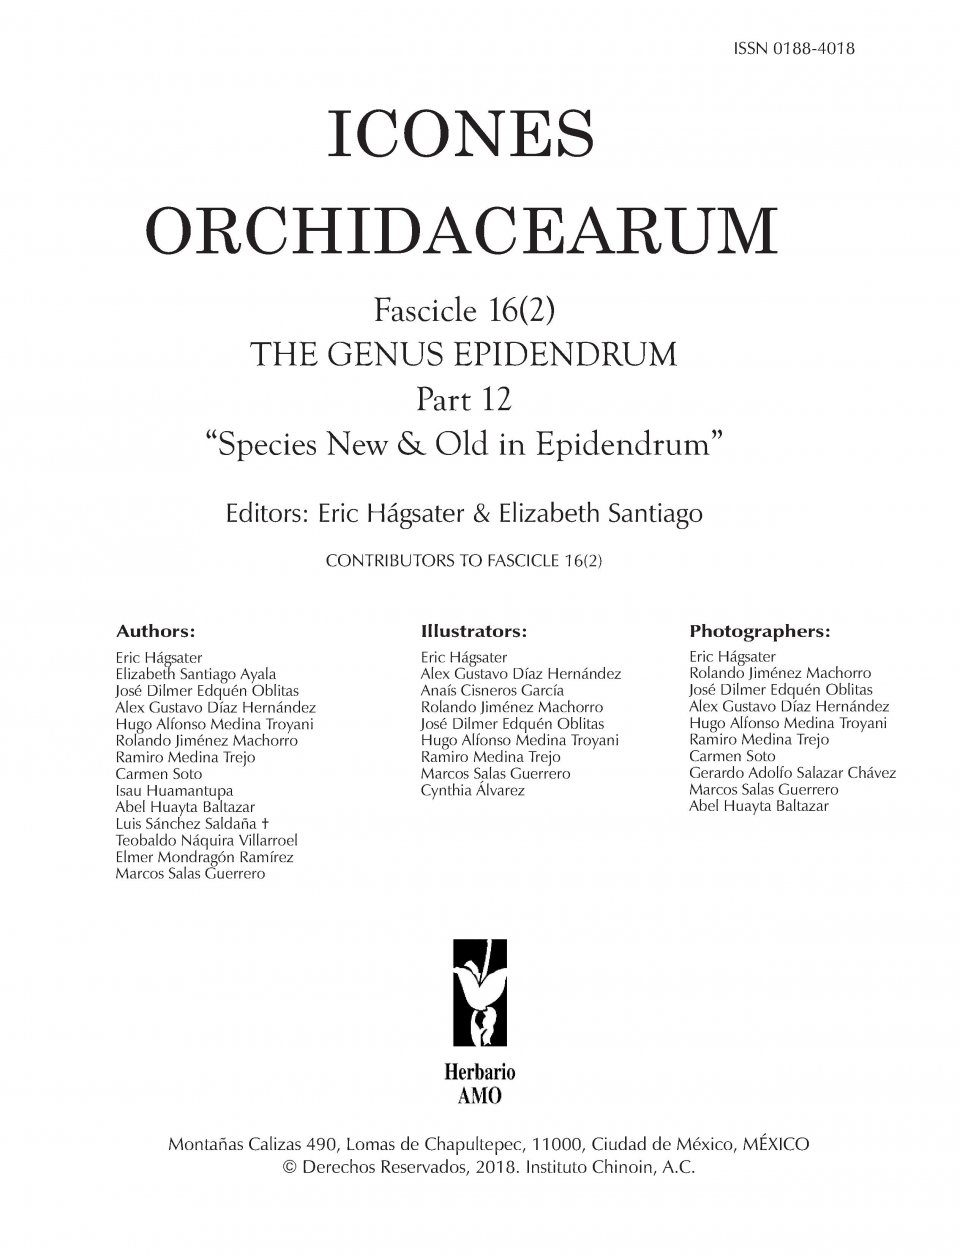 Icones Orchidacearum, Fascicle 16(2)